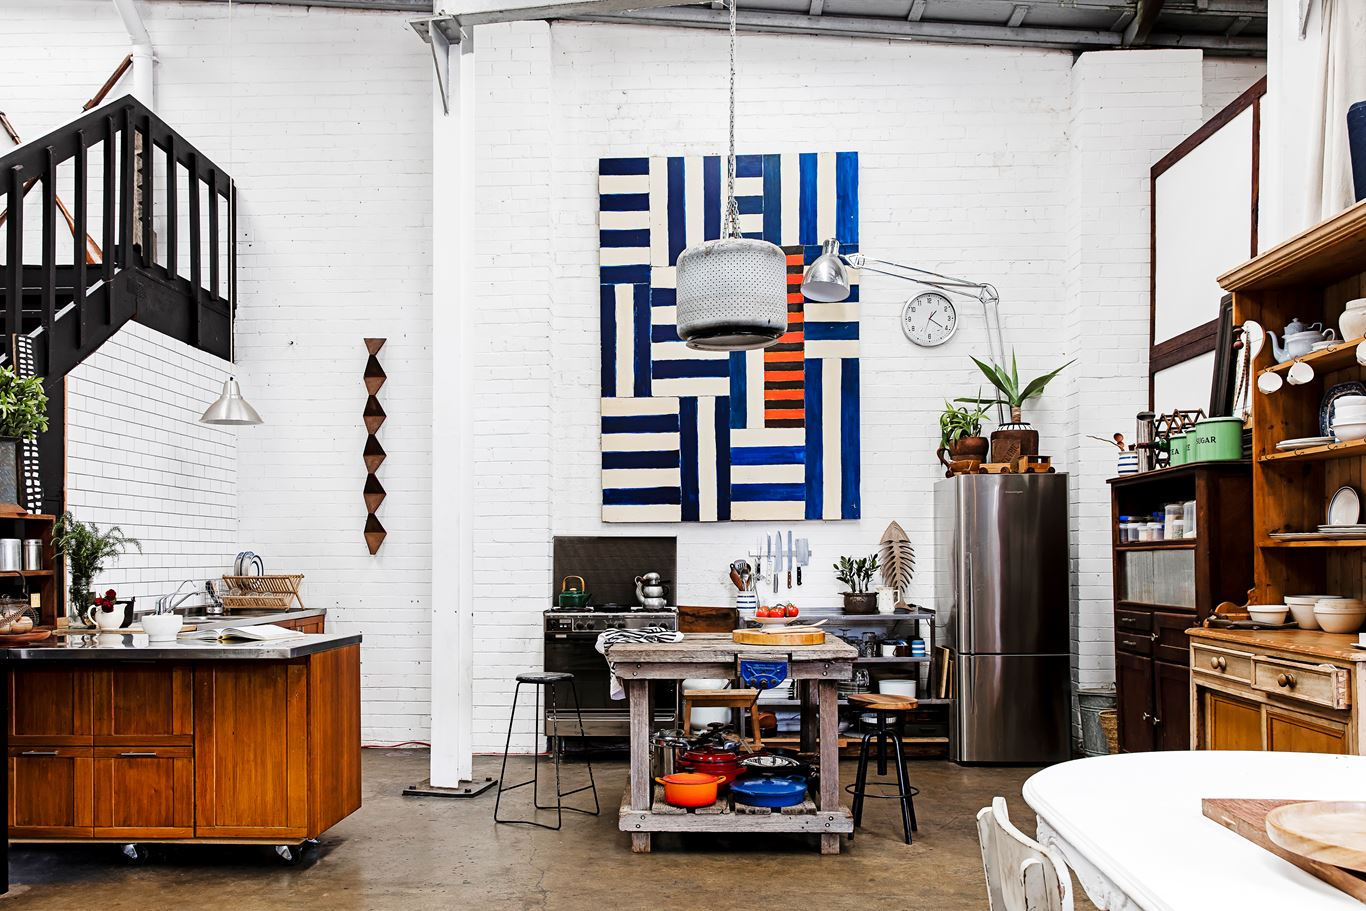 Industrial boho warehouse in Sydney furnished on a shoestring from cleverly upcycled items. Take the tour...